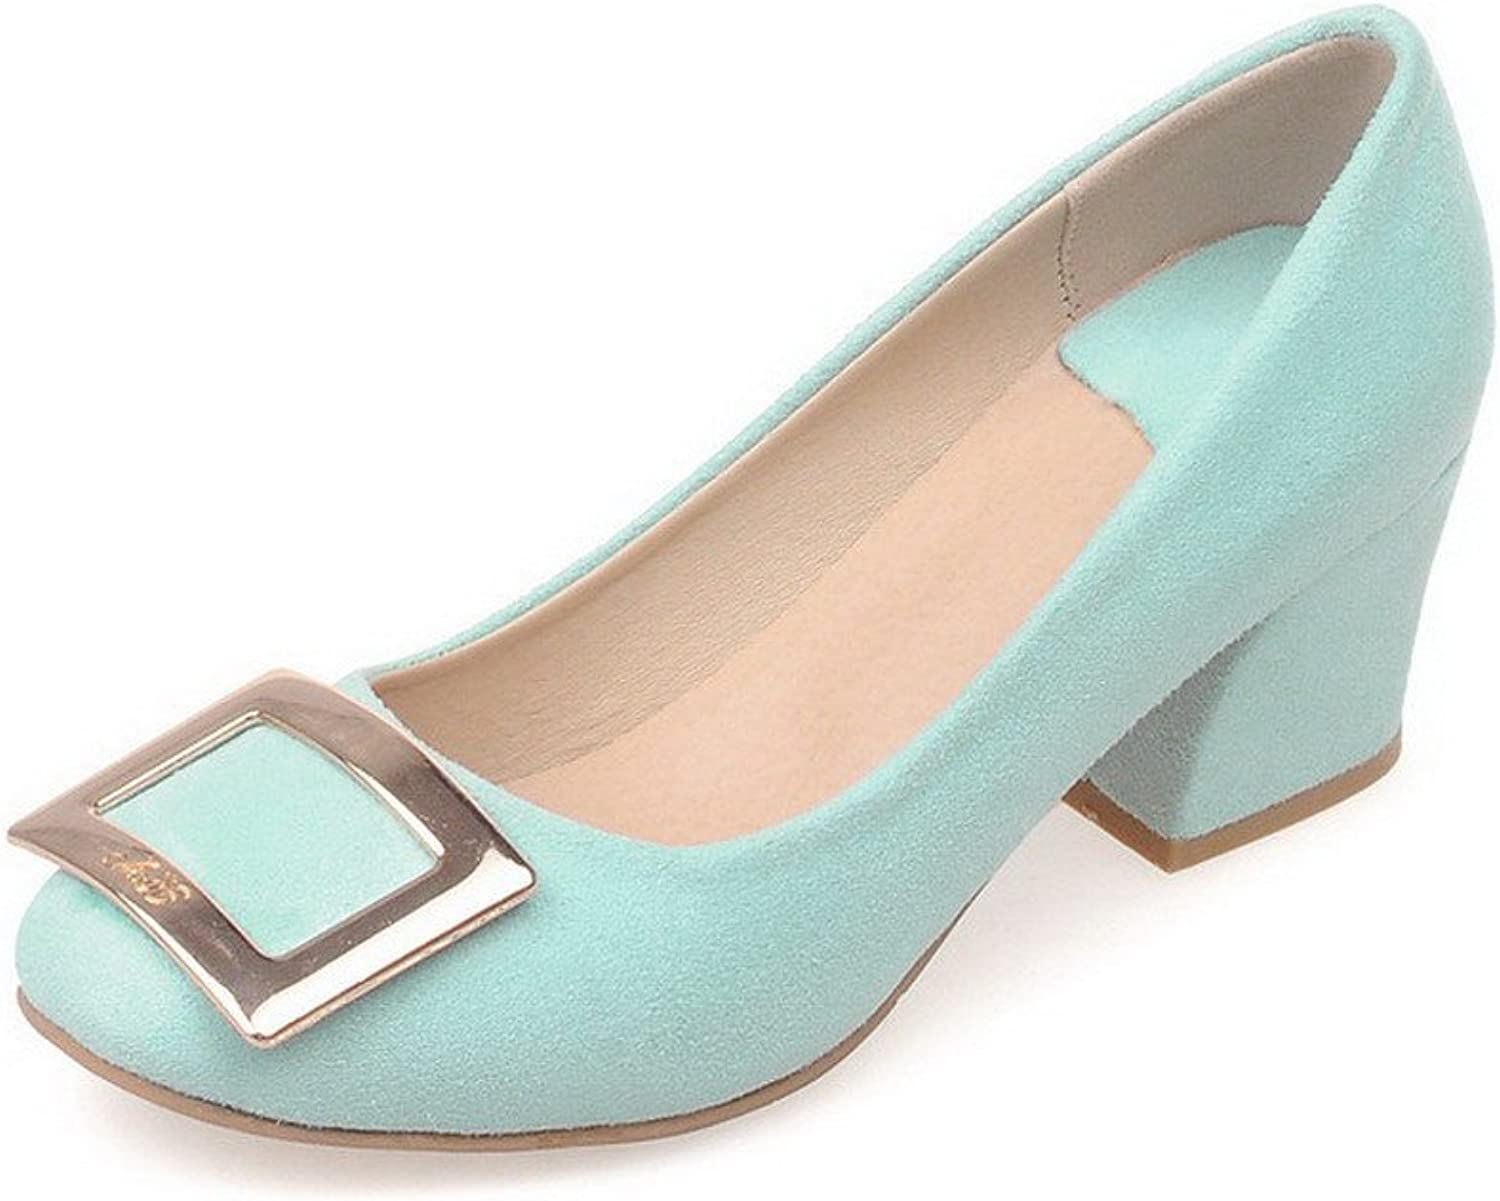 AllhqFashion Women's Pull-on Kitten-Heels Imitated Suede Solid Square Closed Toe Pumps-shoes